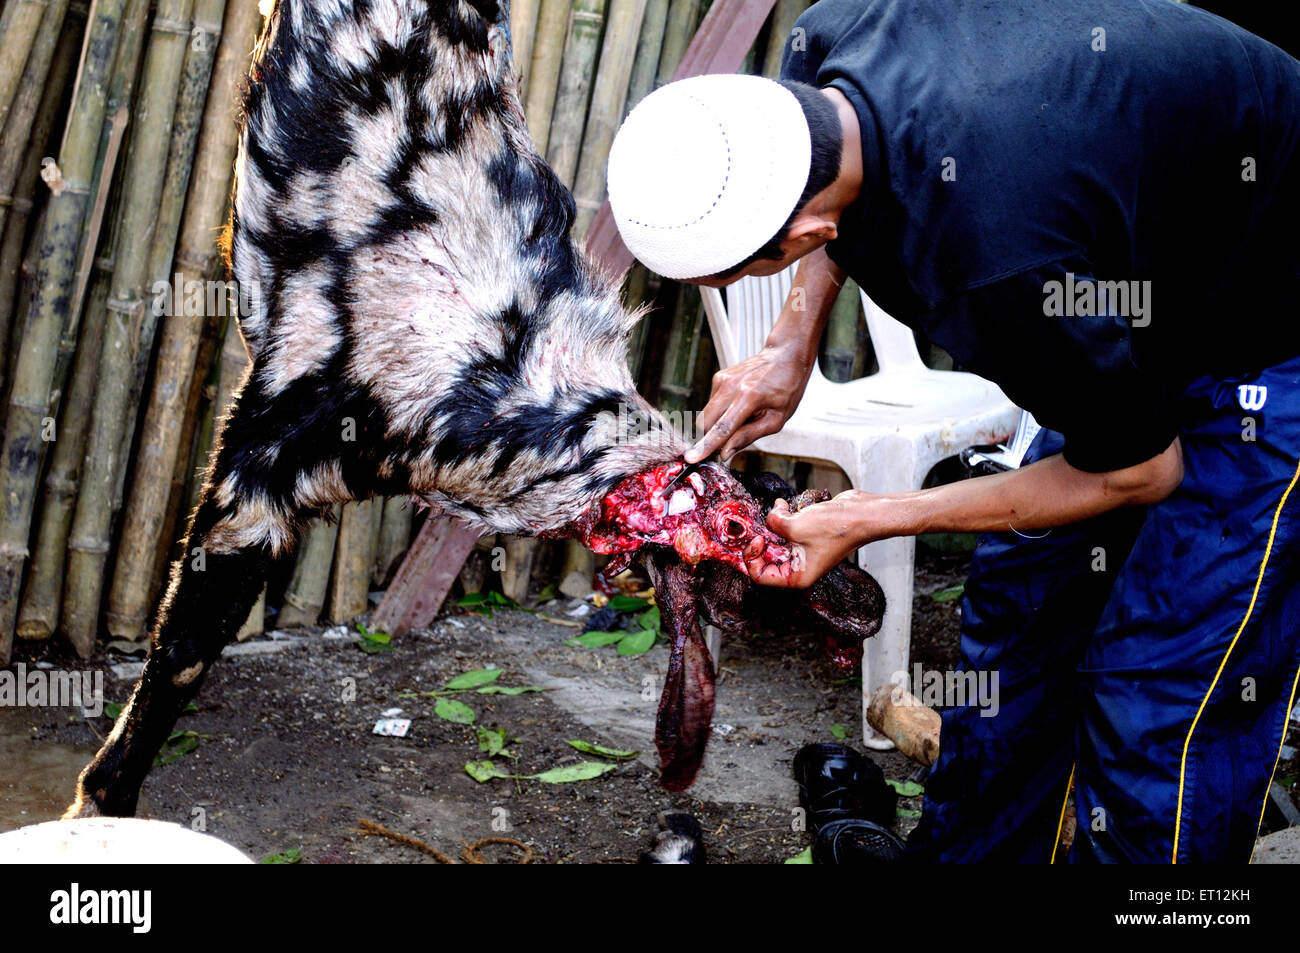 Goat slaughtered on the eve of bakra eid ; India - Stock Image